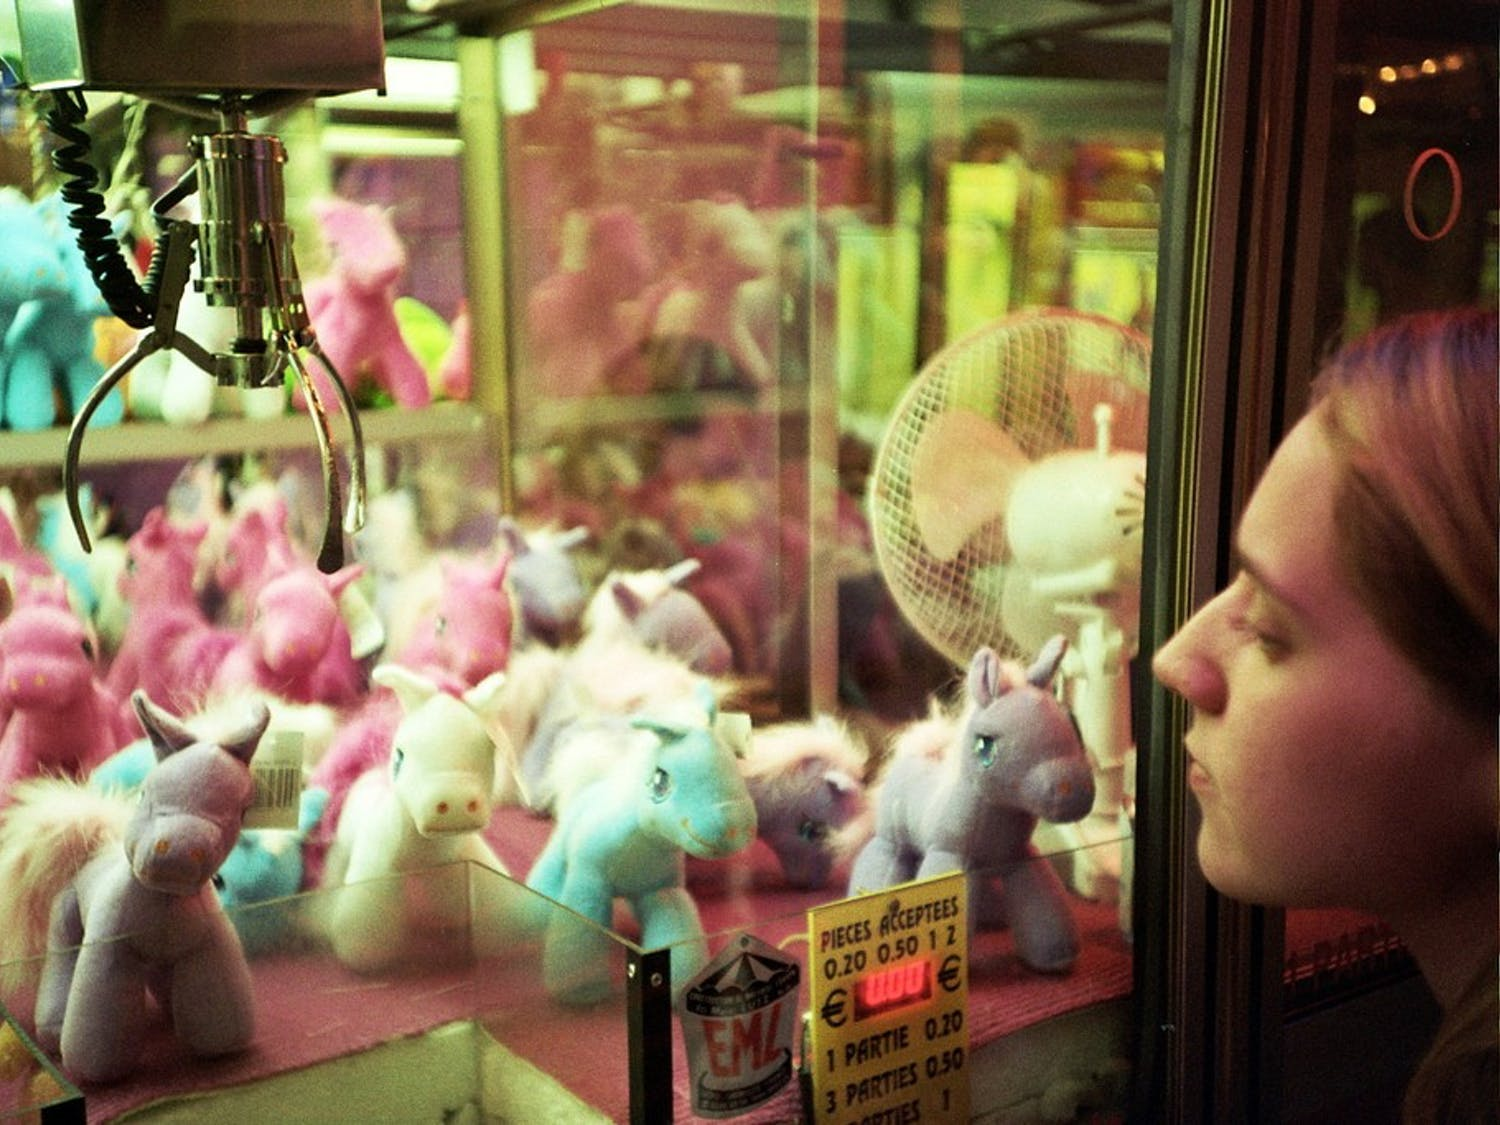 A_Claw_Crane_game_machine_containing_unicorn_plushes_in_Trouville,_France,_Sept_2011.jpg